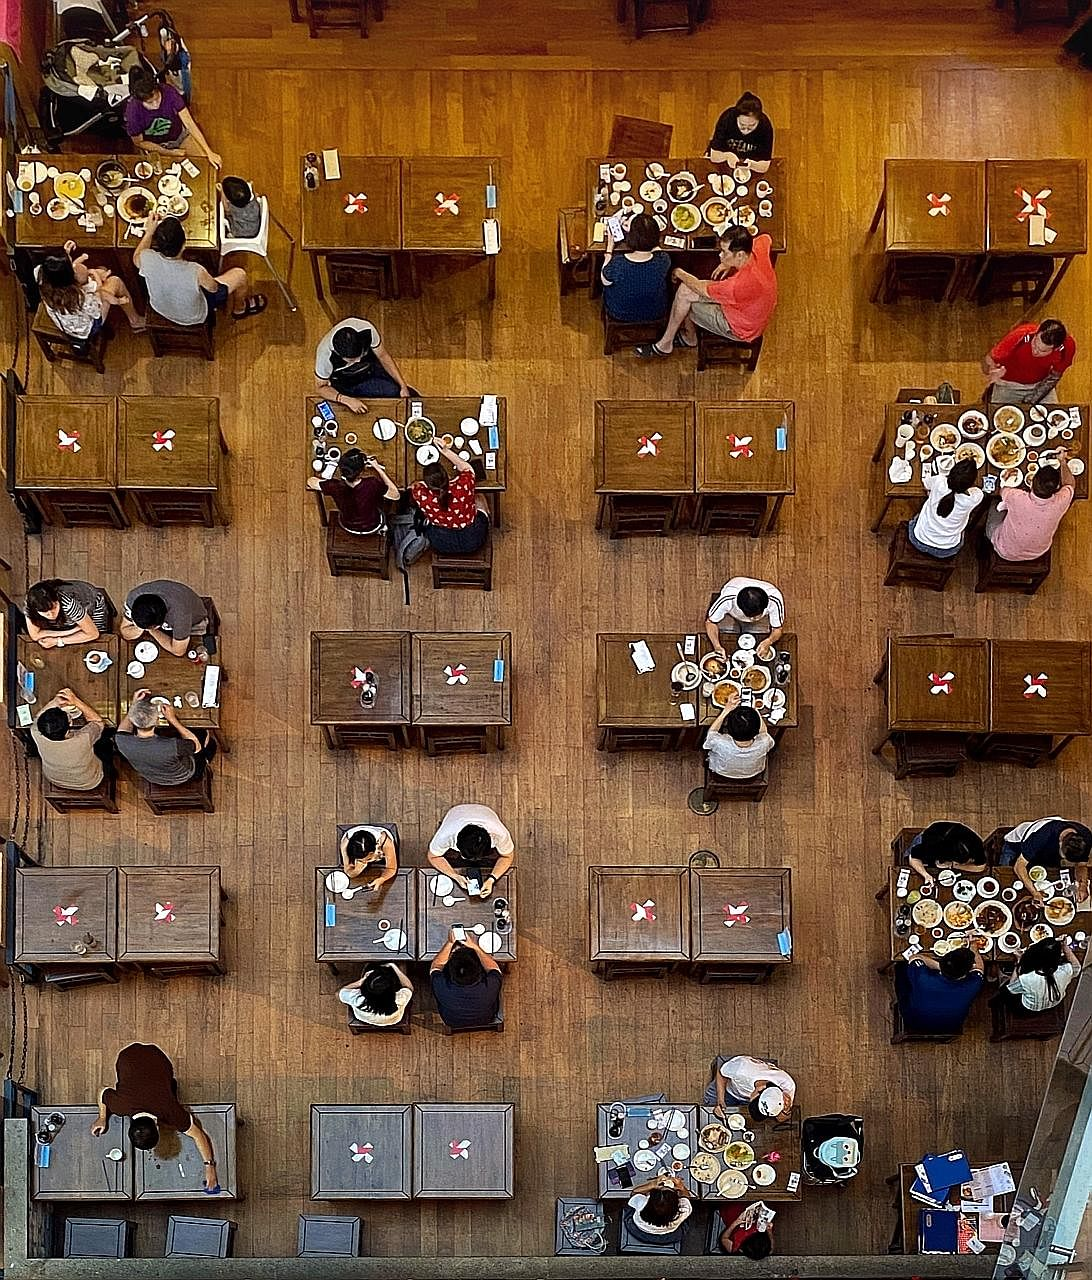 Social distancing measures taken at Dian Xiao Er in Jurong Point, in March. The restaurant chain has taken out a $2 million loan under the Temporary Bridging Loan Programme to be used for working capital and tech upgrading.